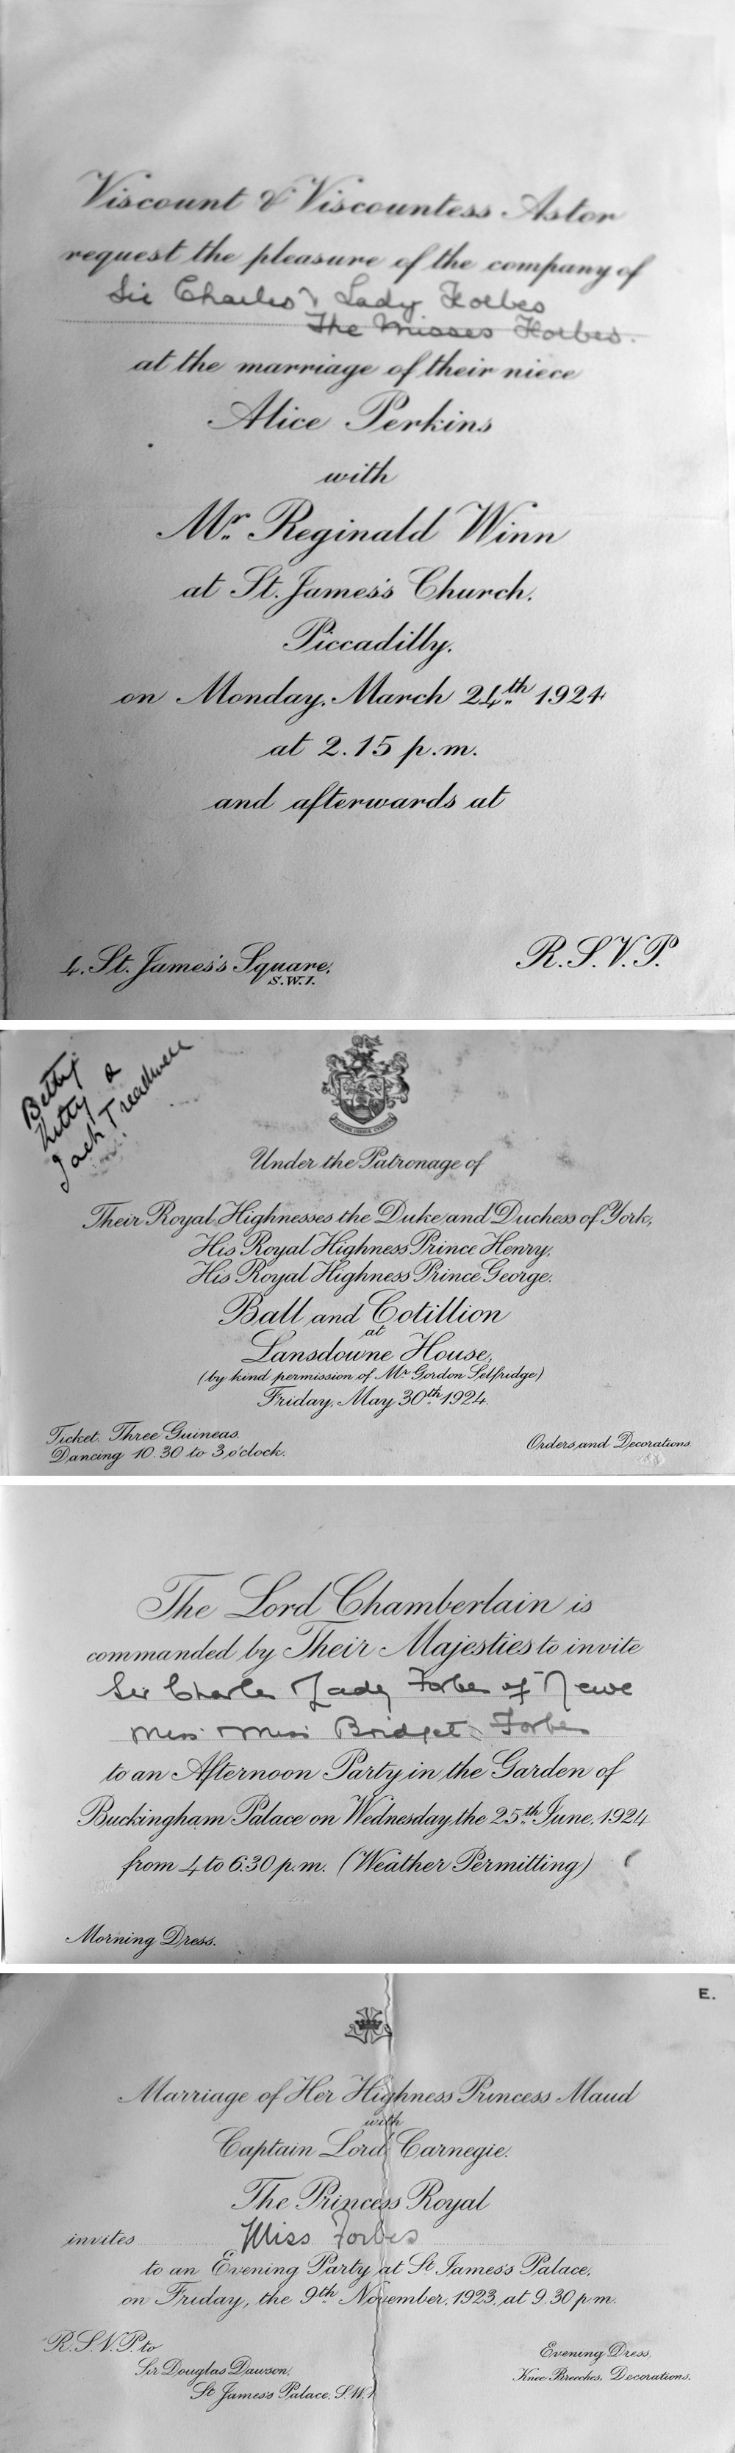 25 Bettines Social Invitations 1923